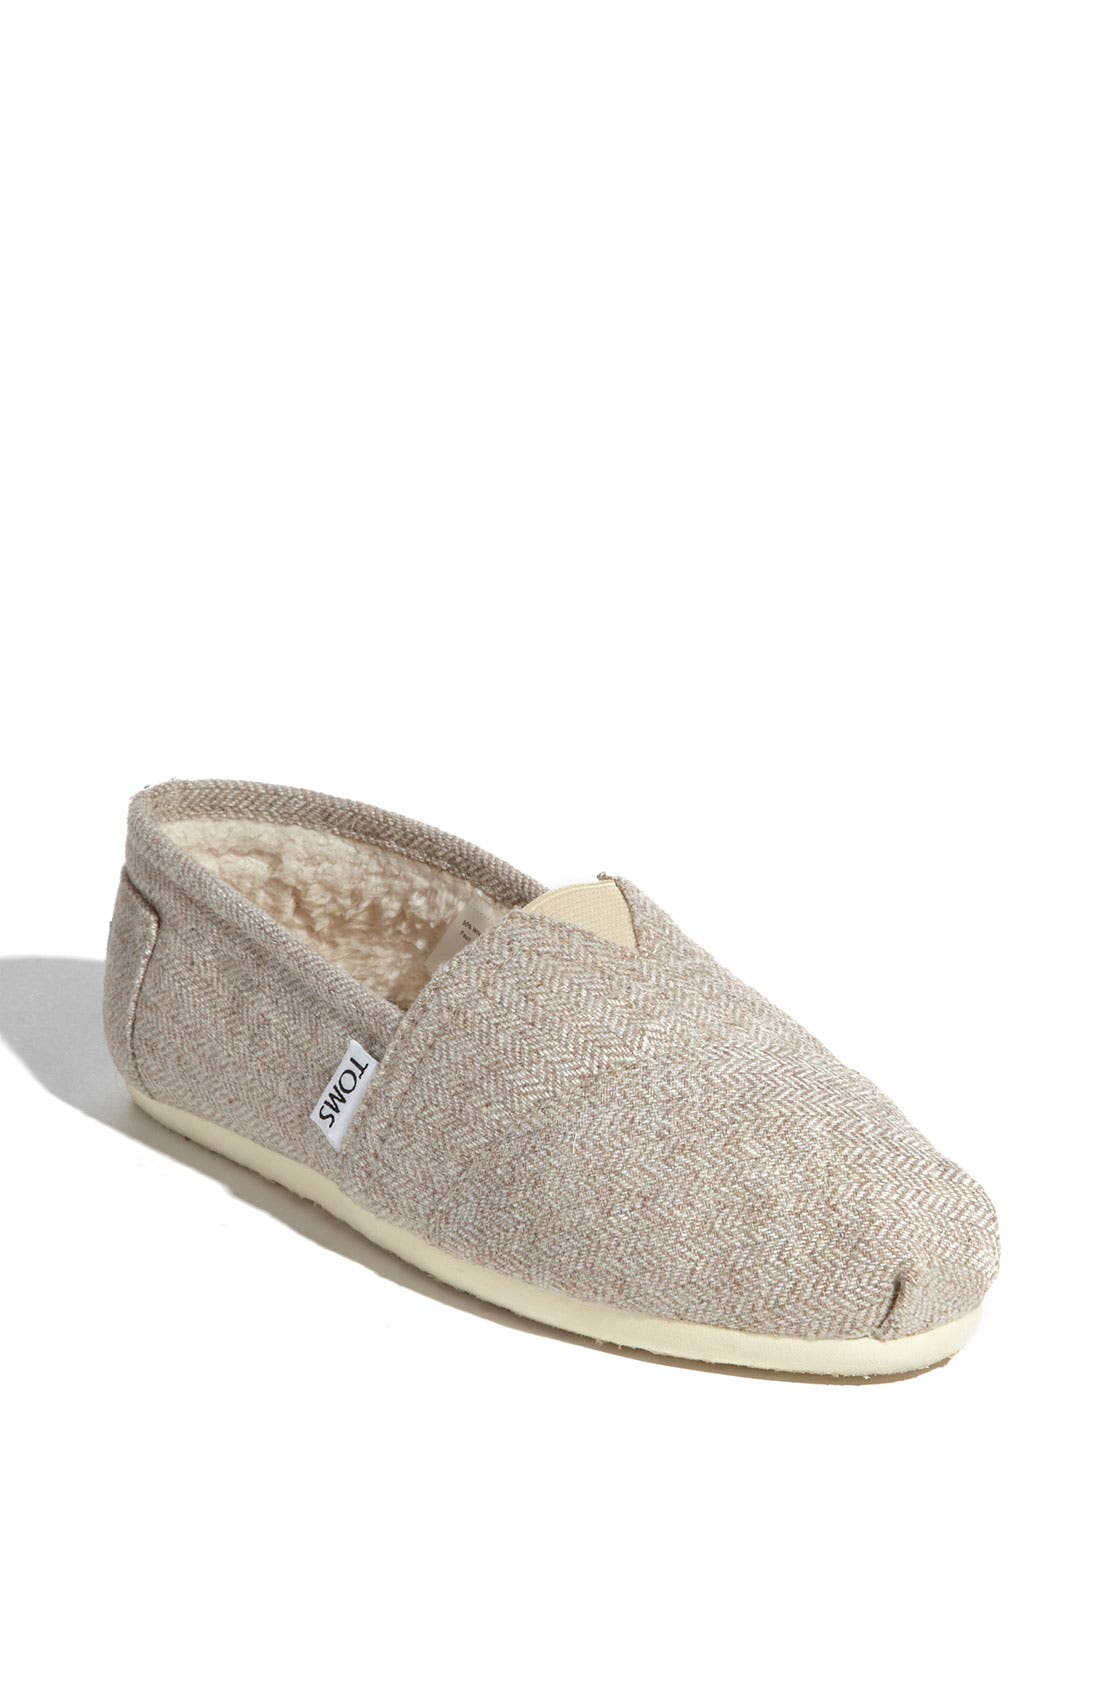 Alternate Image 1 Selected - TOMS Herringbone Fleece Slip-On (Women) (Exclusive)